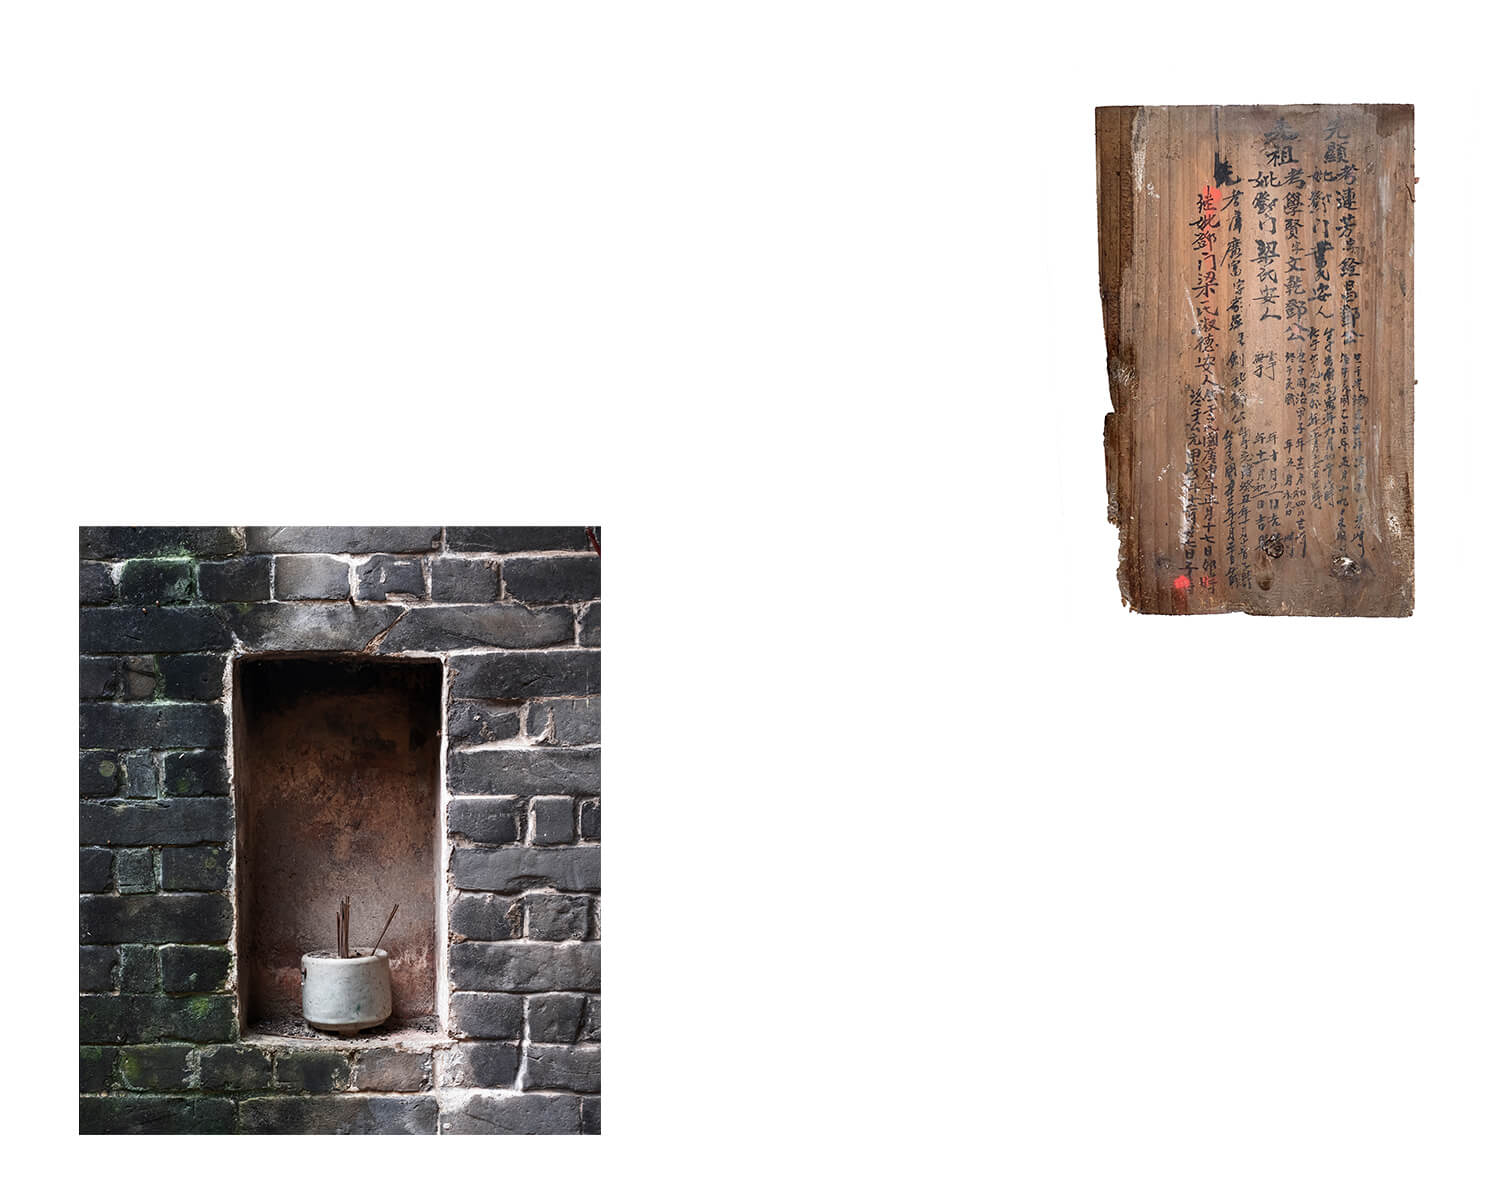 Tony Mak - To The West Of The Solitary Sea. Diptych of candle in wall and Chinese scriptures